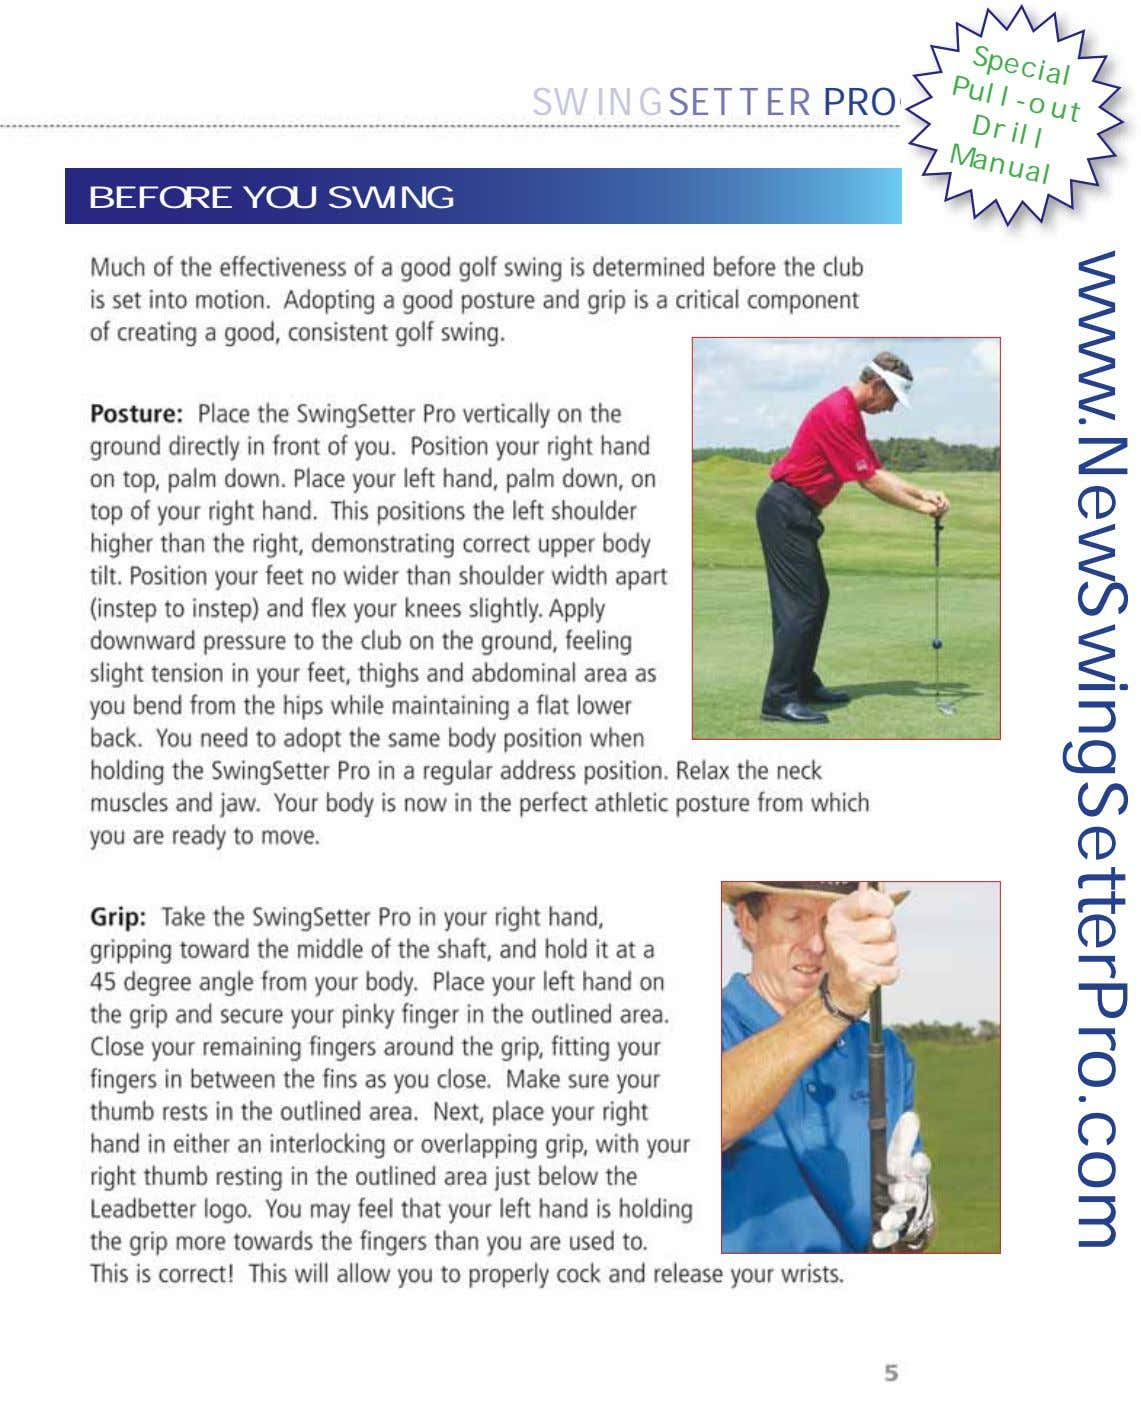 Special Pull-out Drill Manual SWINGSETTER PRO BEFORE YOU SWING www.NewSwingSetterPro.com